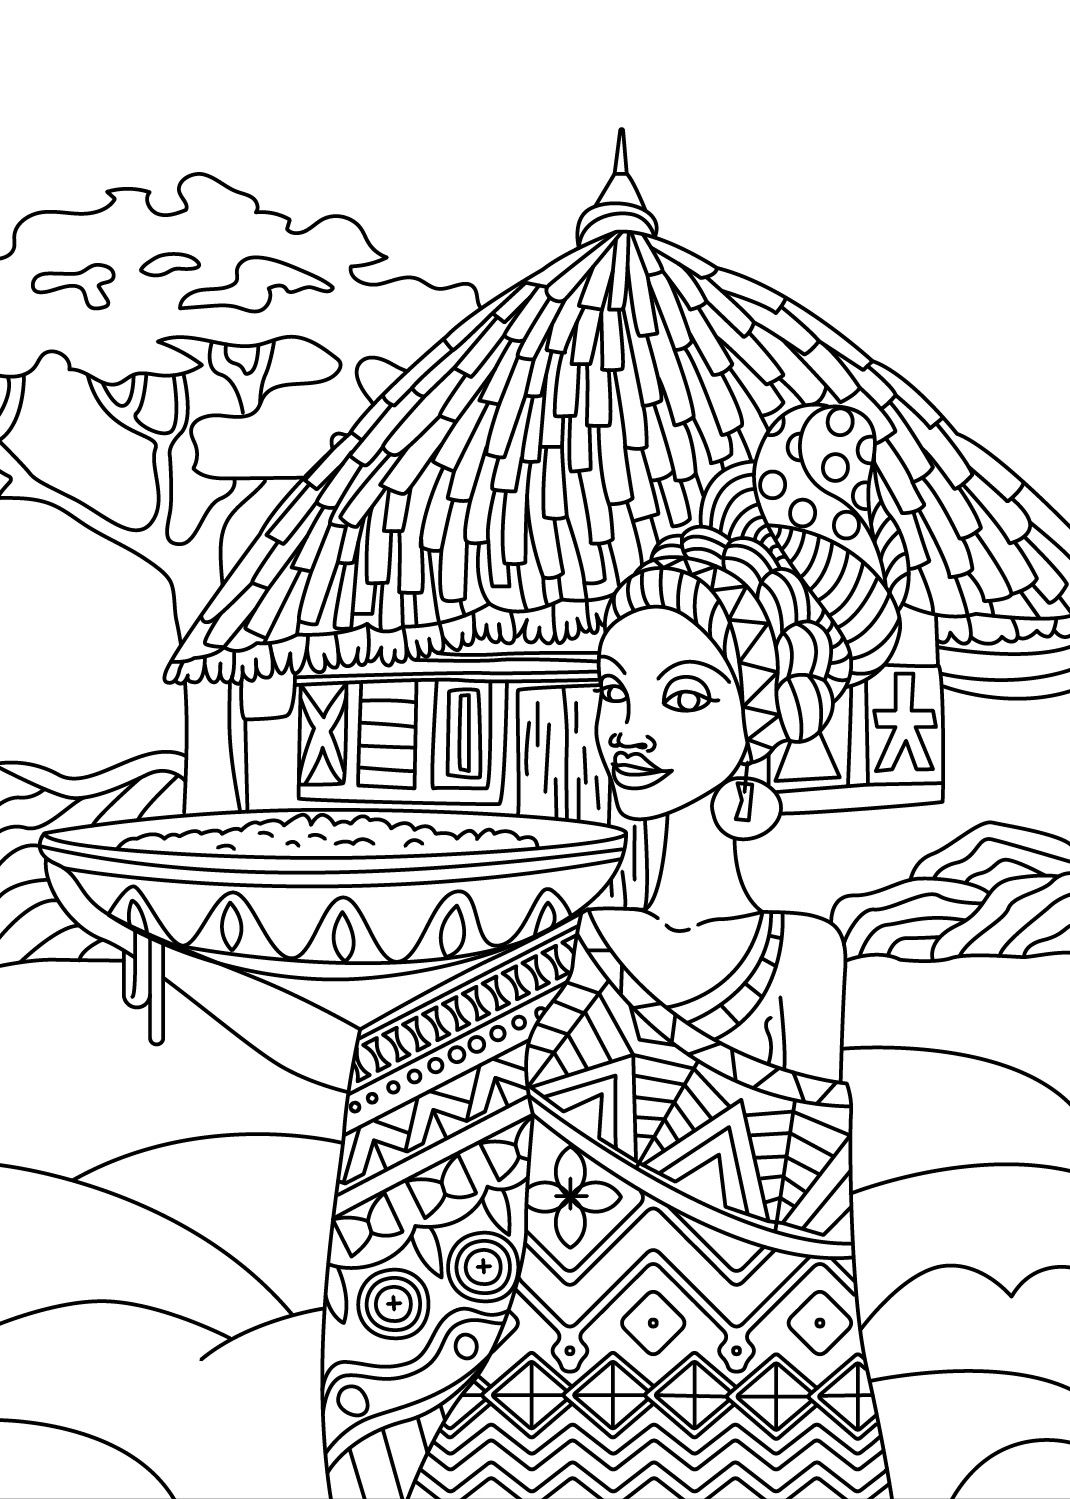 african colorish coloring book app for adults mandala relax by goodsofttech - Adult Coloring Book App